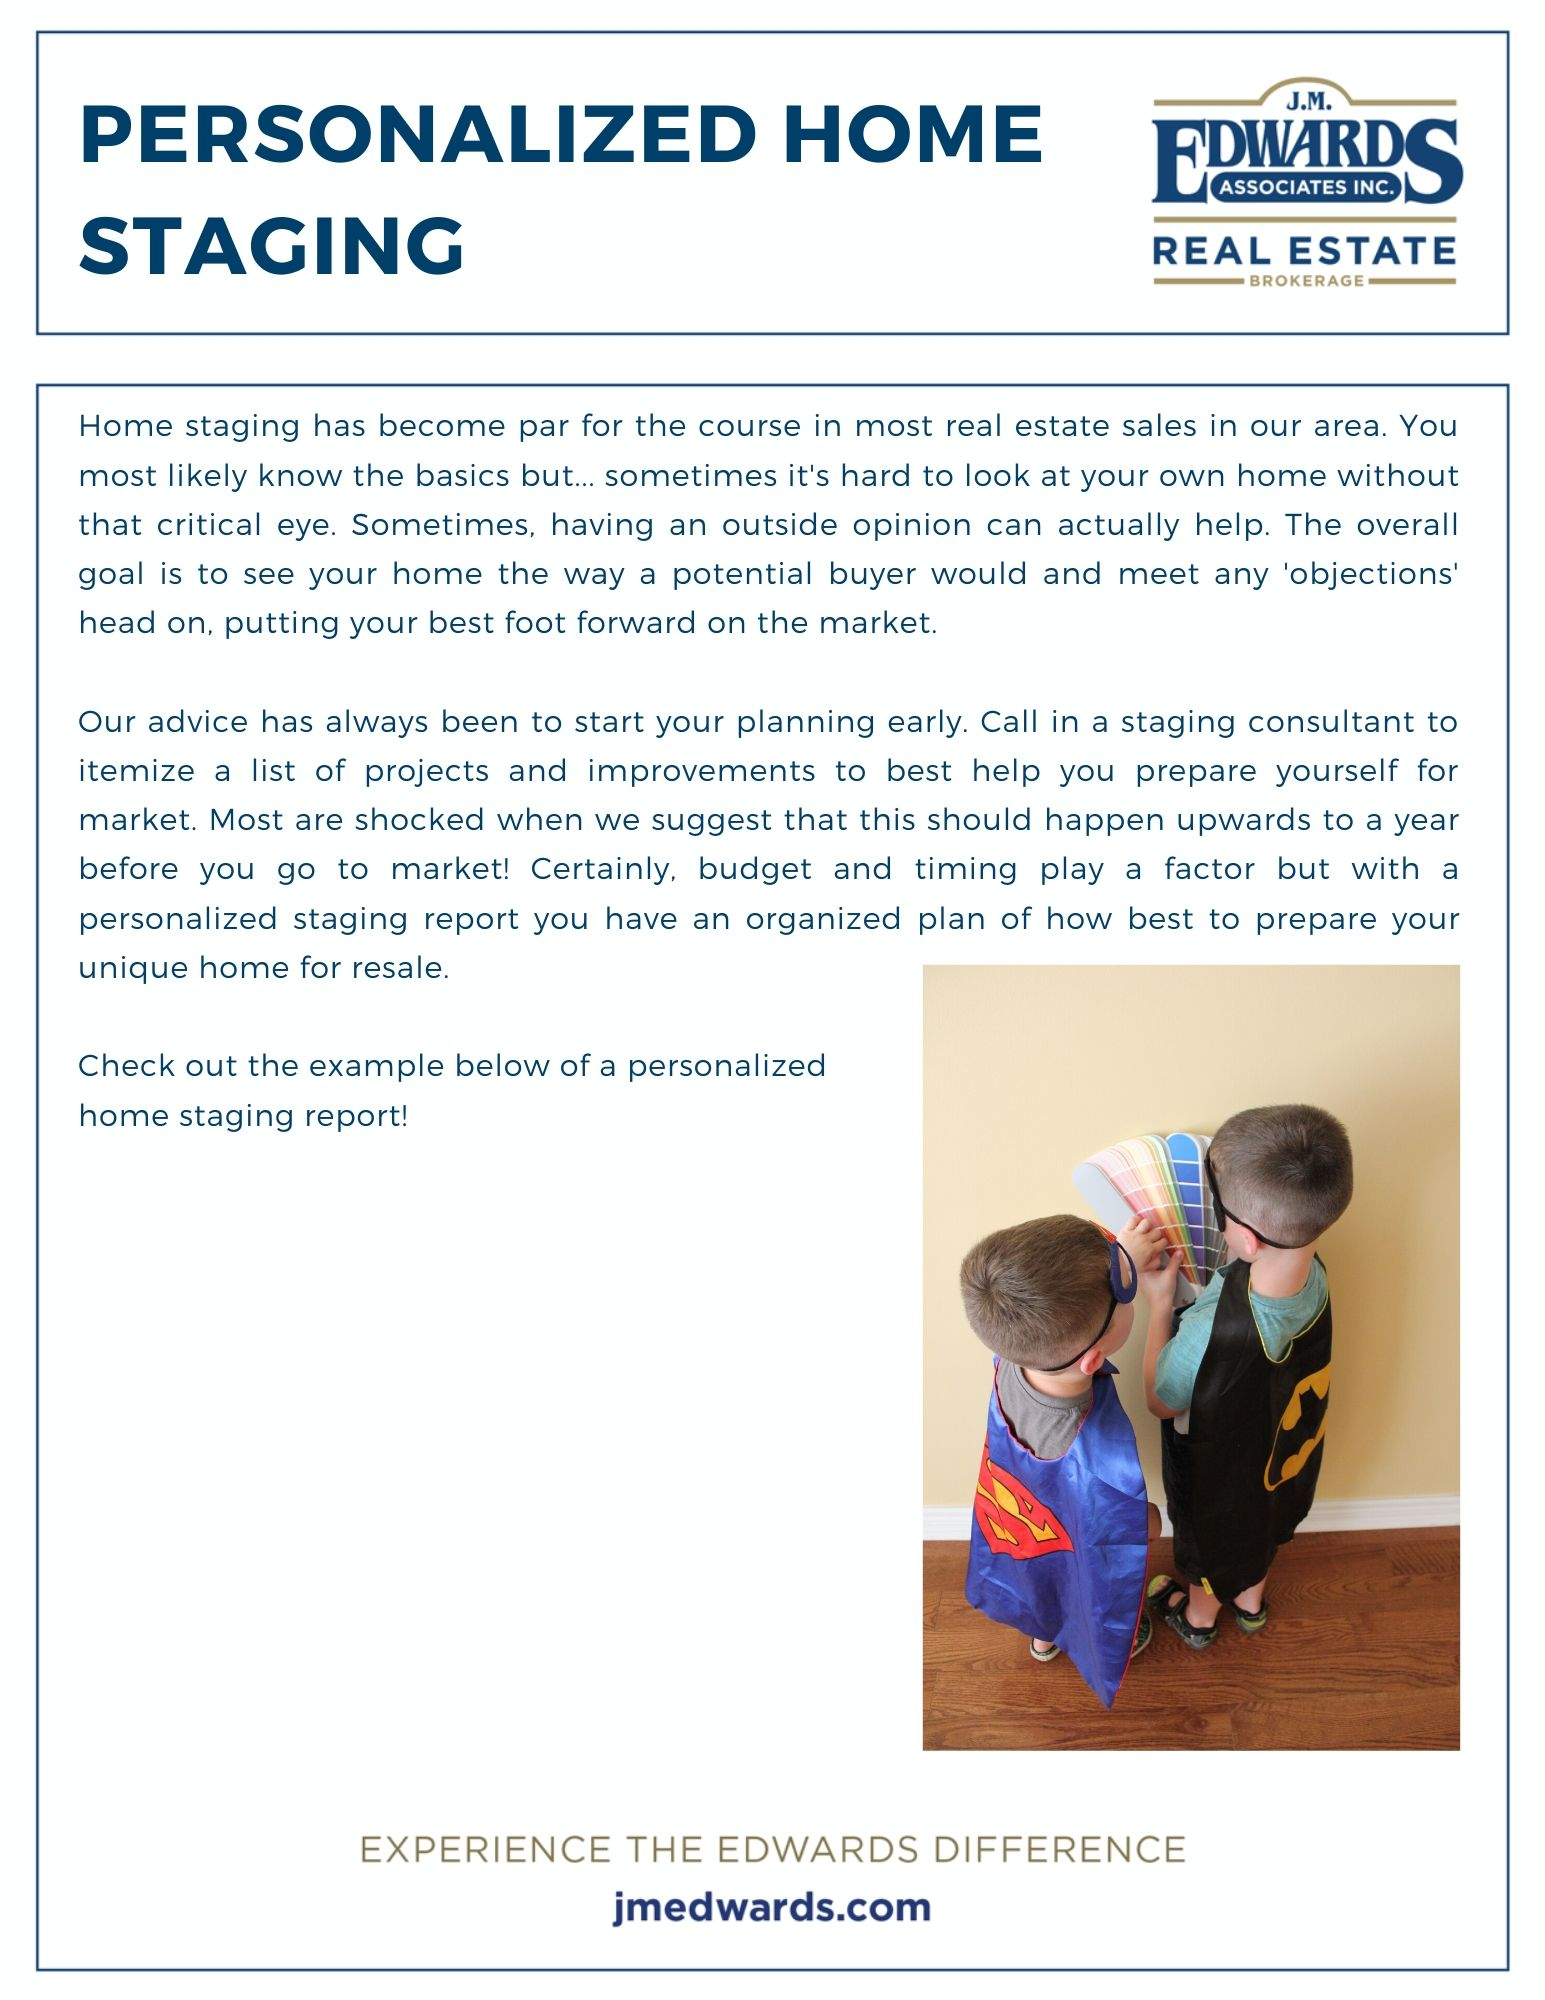 SUBMIT: DS01a - Personalized Home Staging.jpg